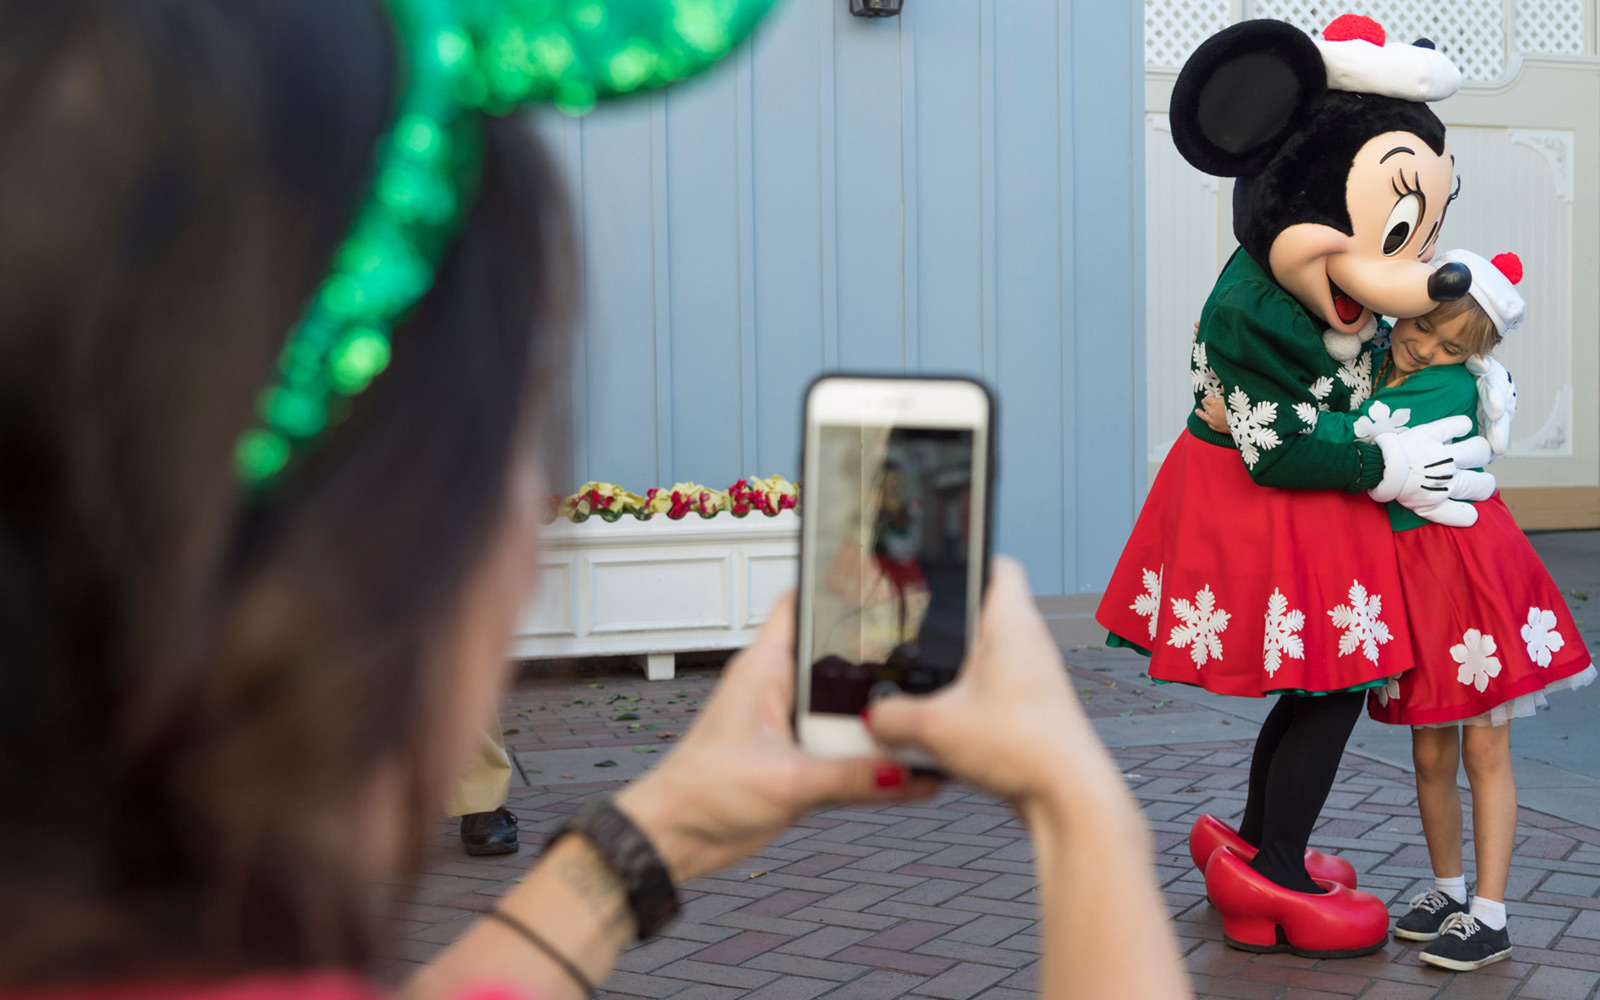 Minnie Mouse poses for photo during the holidays at Disneyland Resort